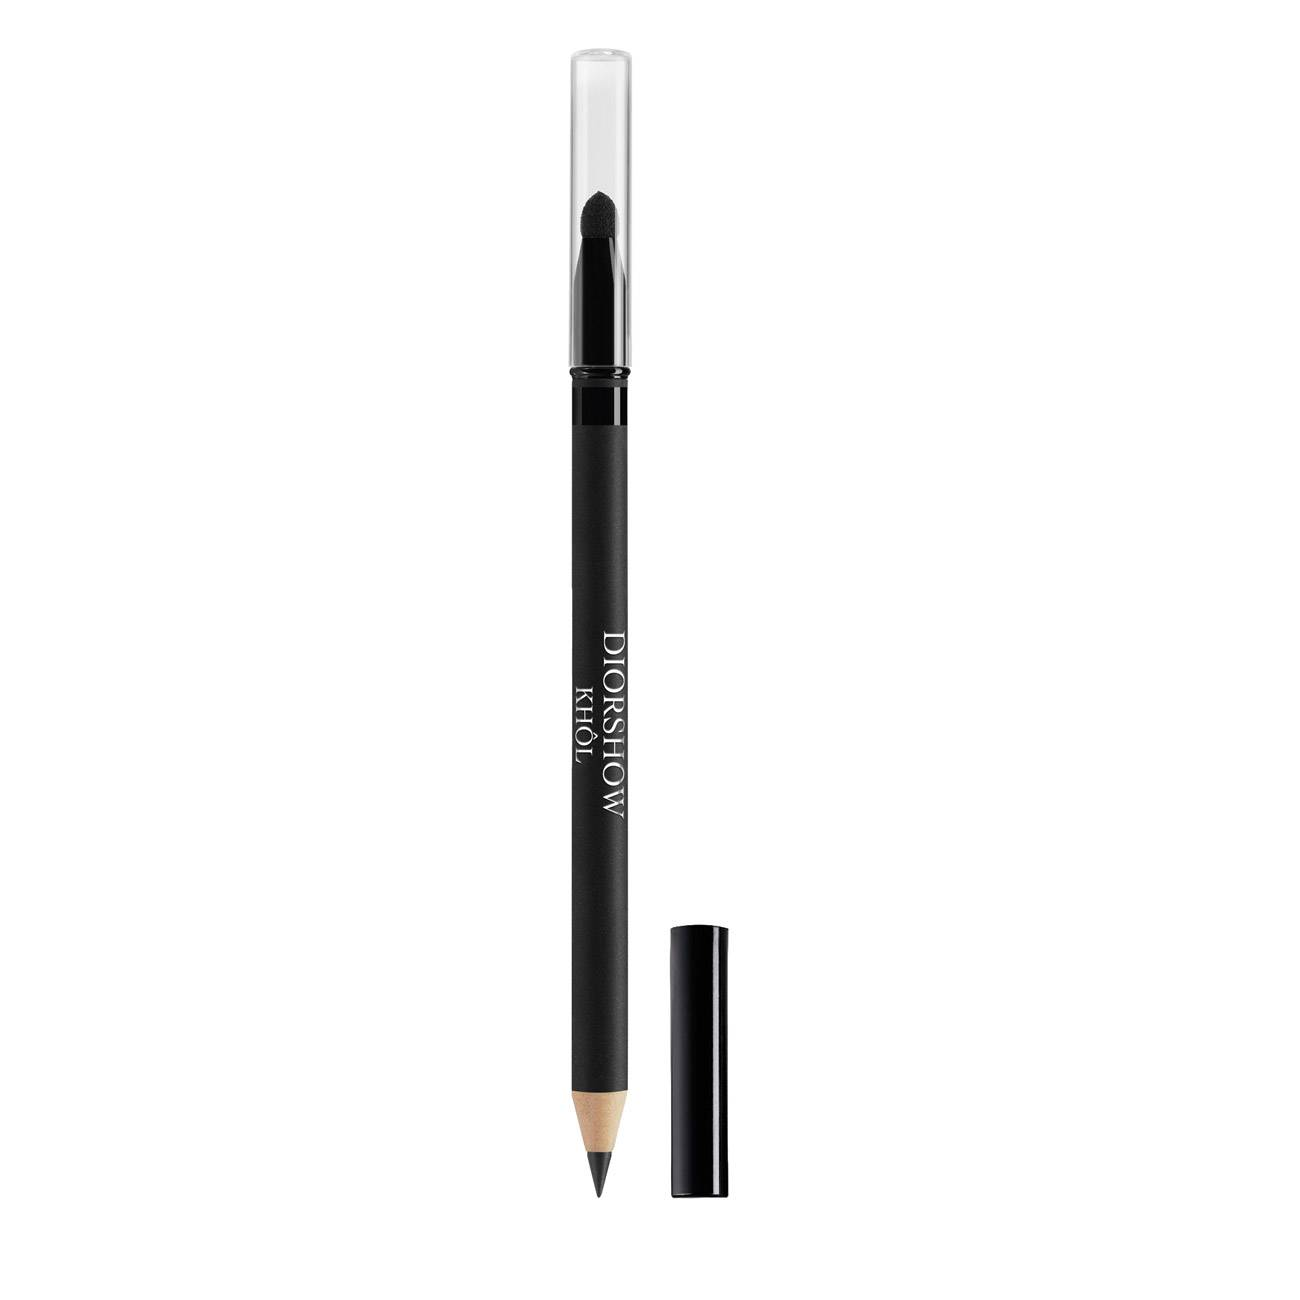 DIORSHOW KHOL EYE PENCIL 099 1 Grame